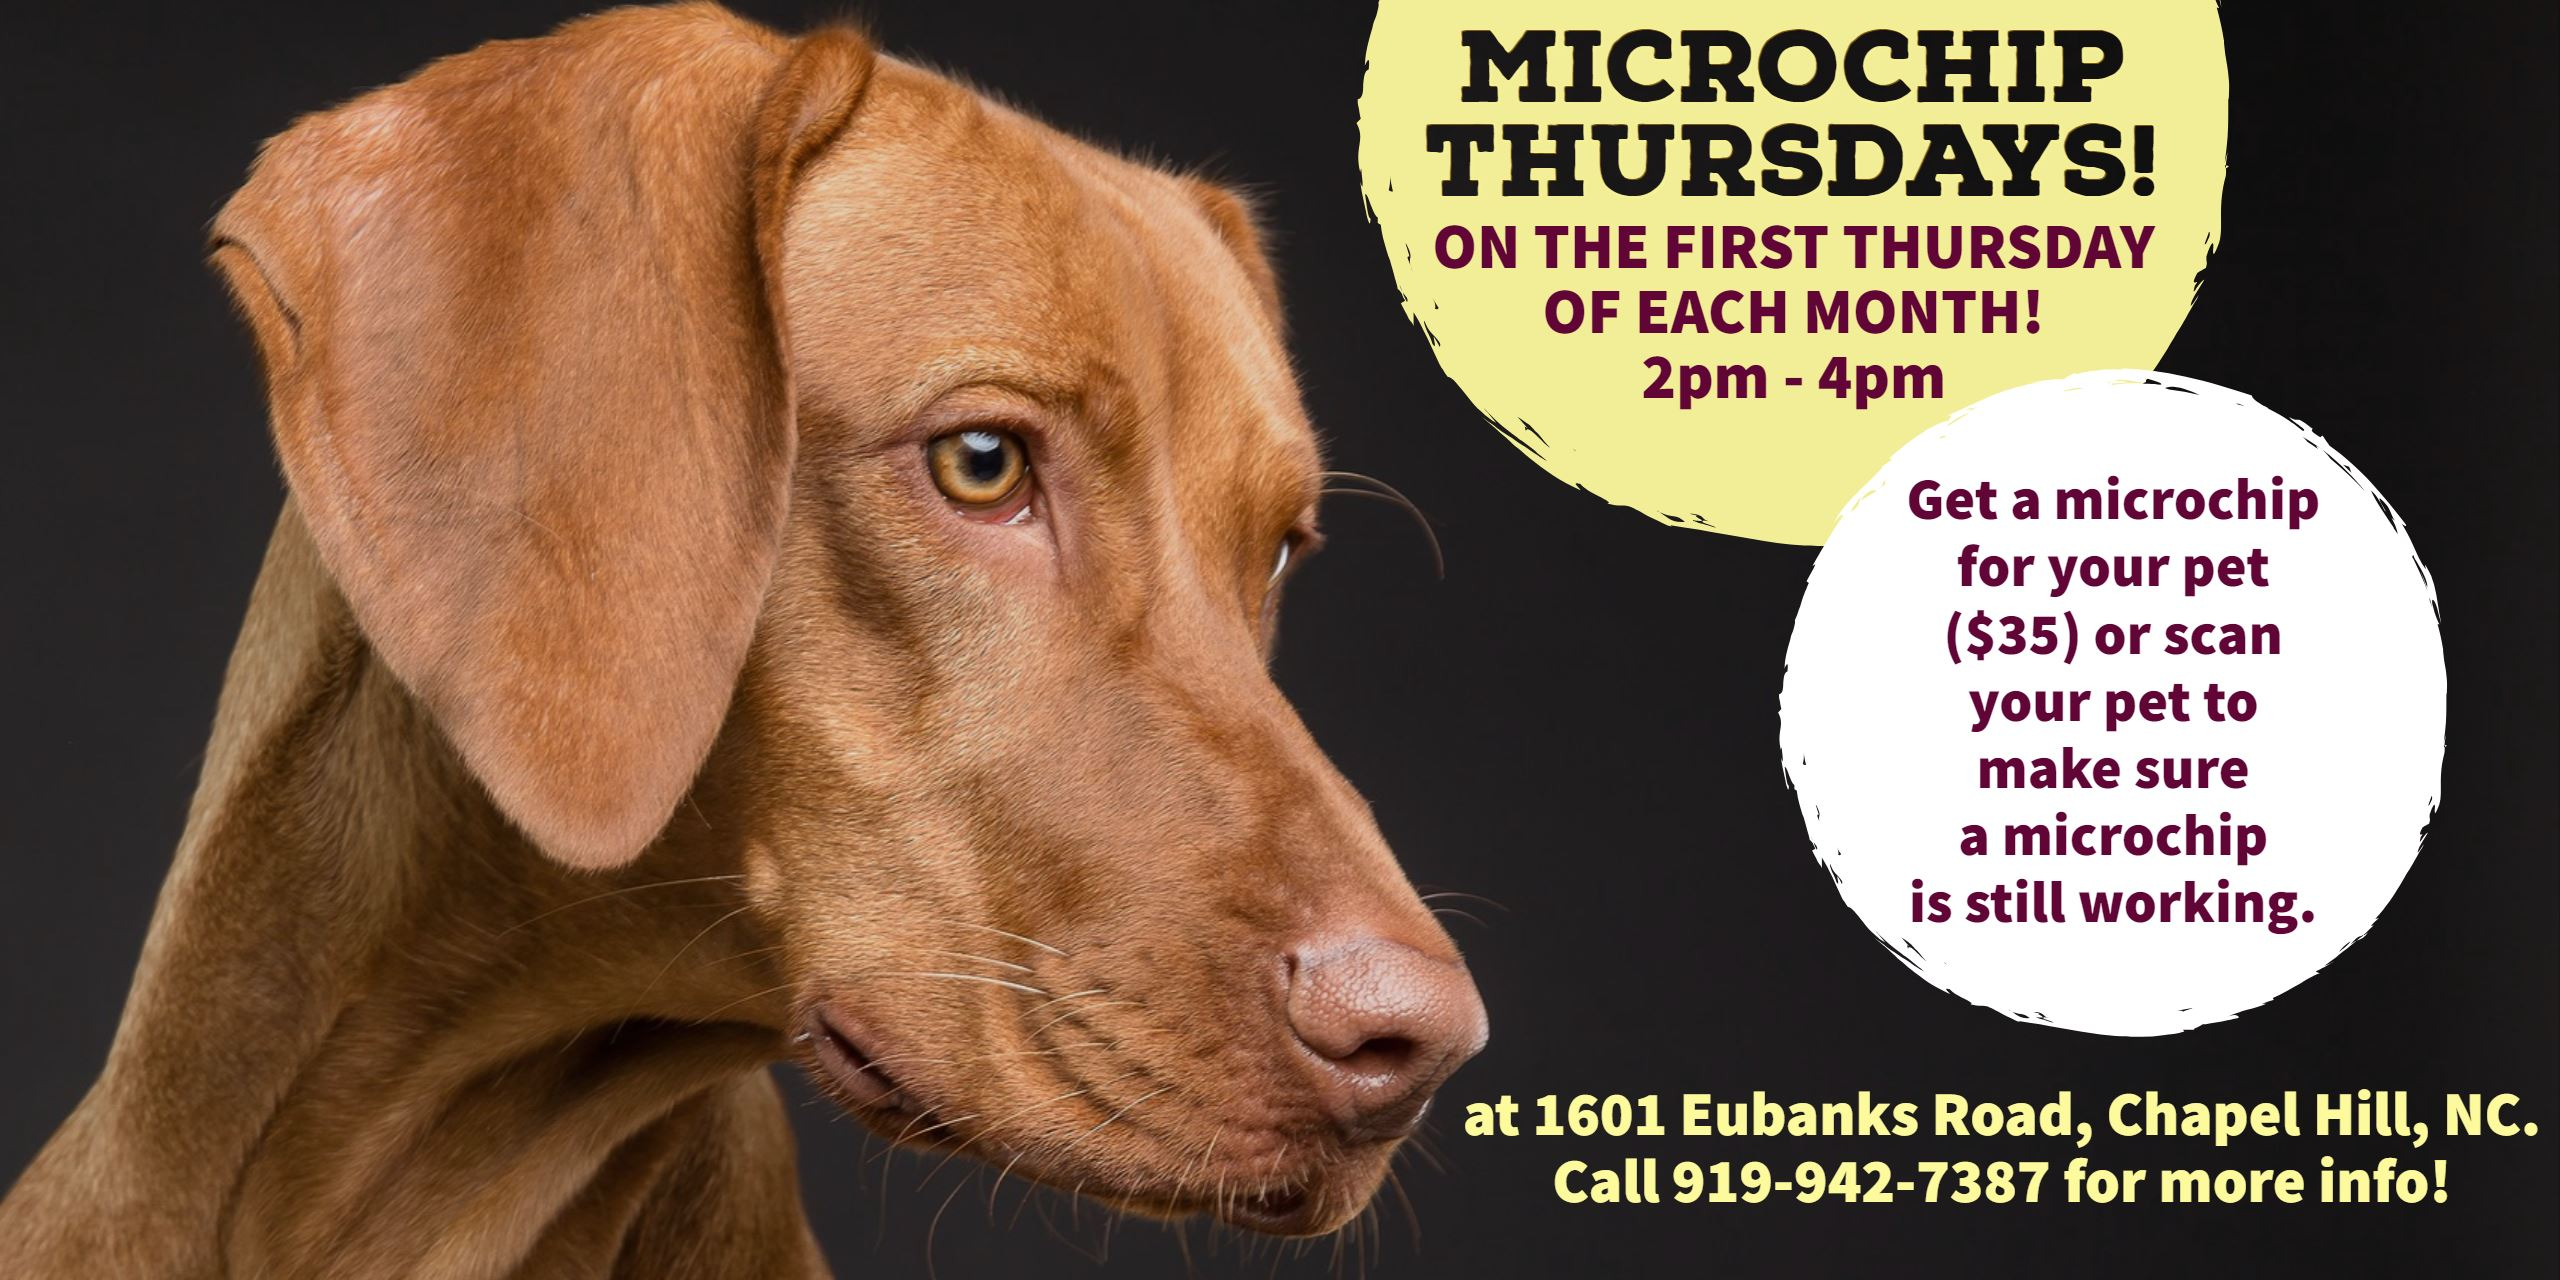 Microchip Thursdays!